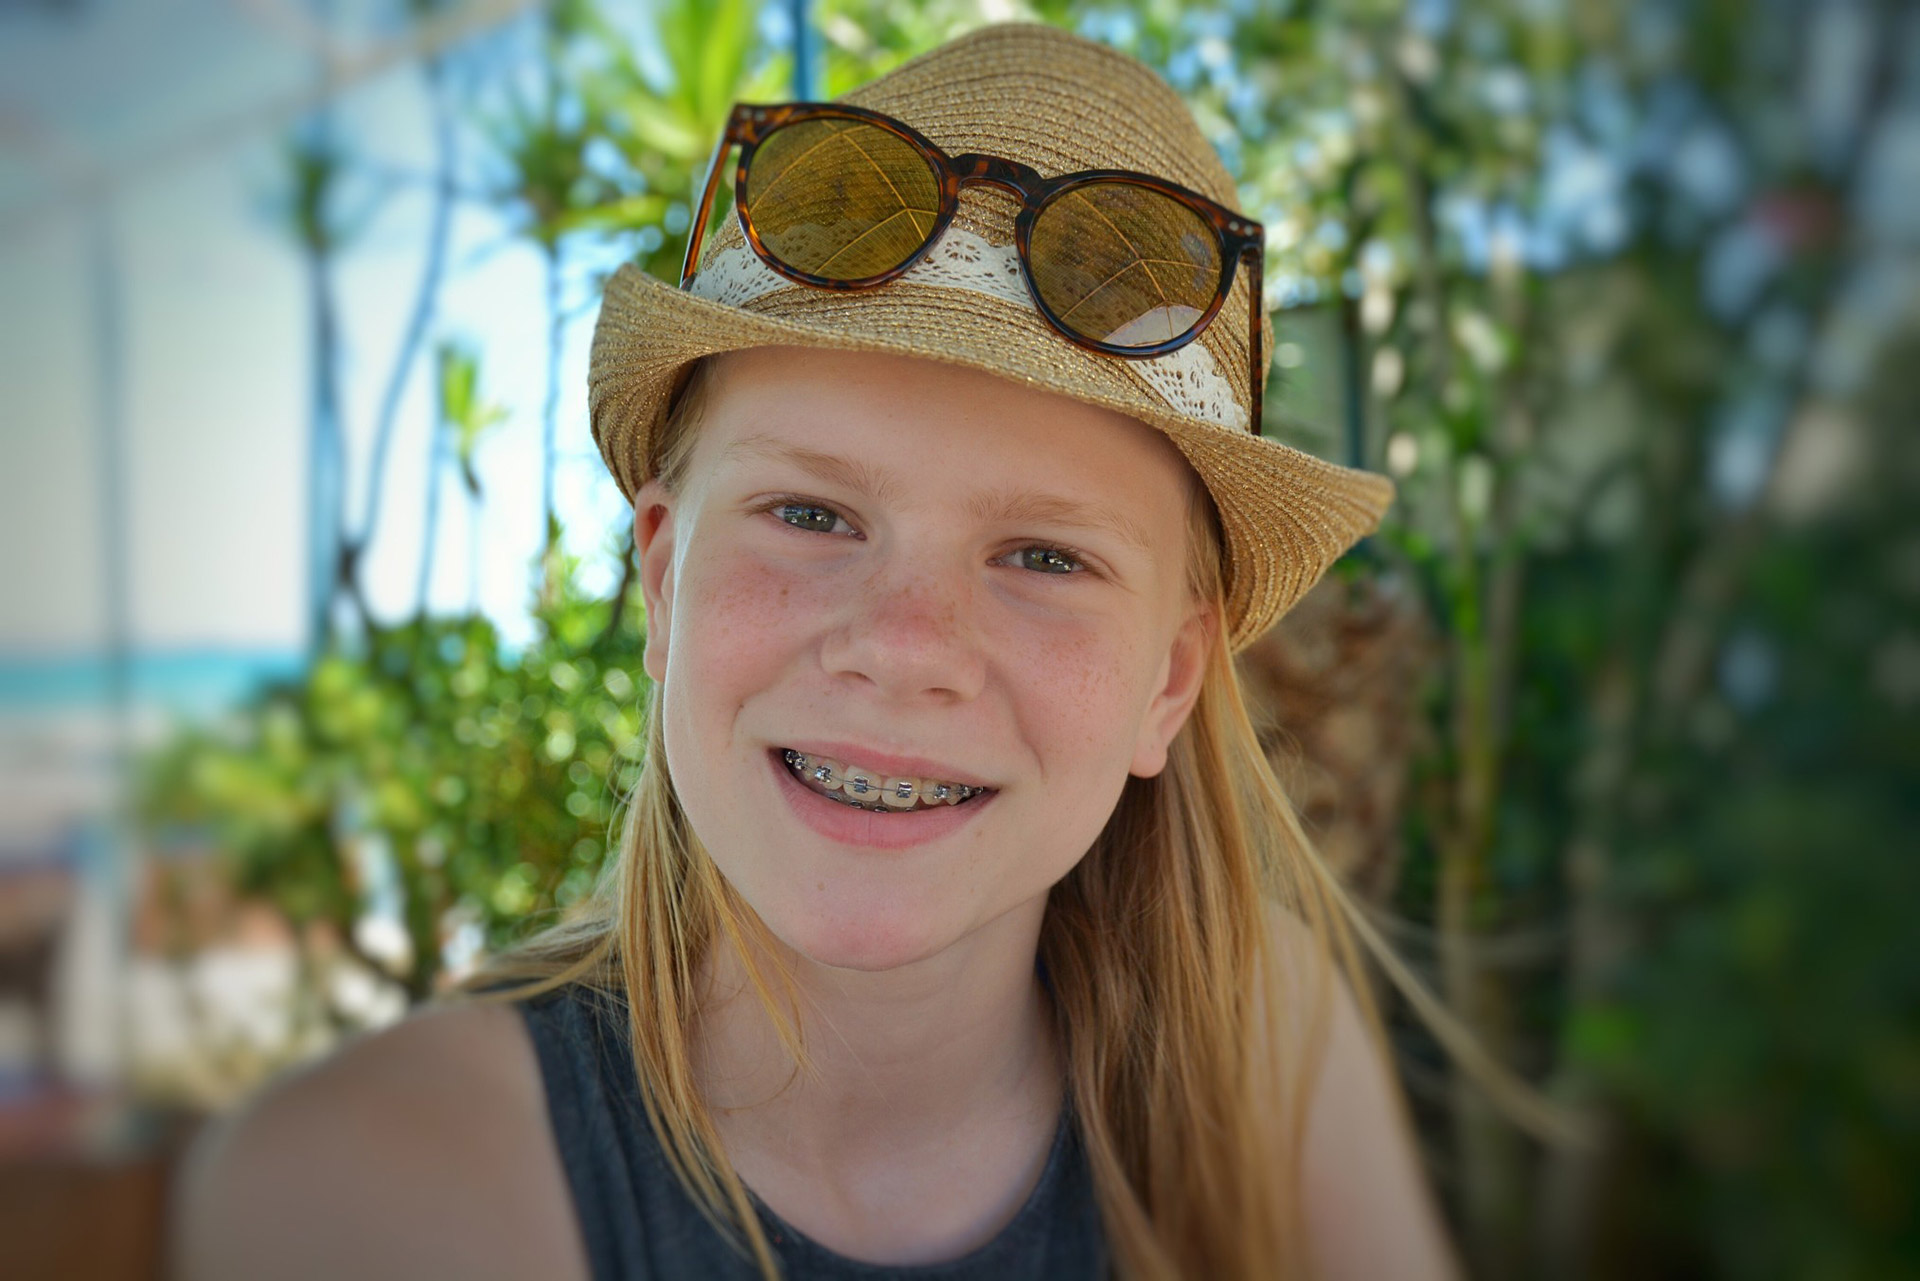 Pre-teen girl wearing braces in summer